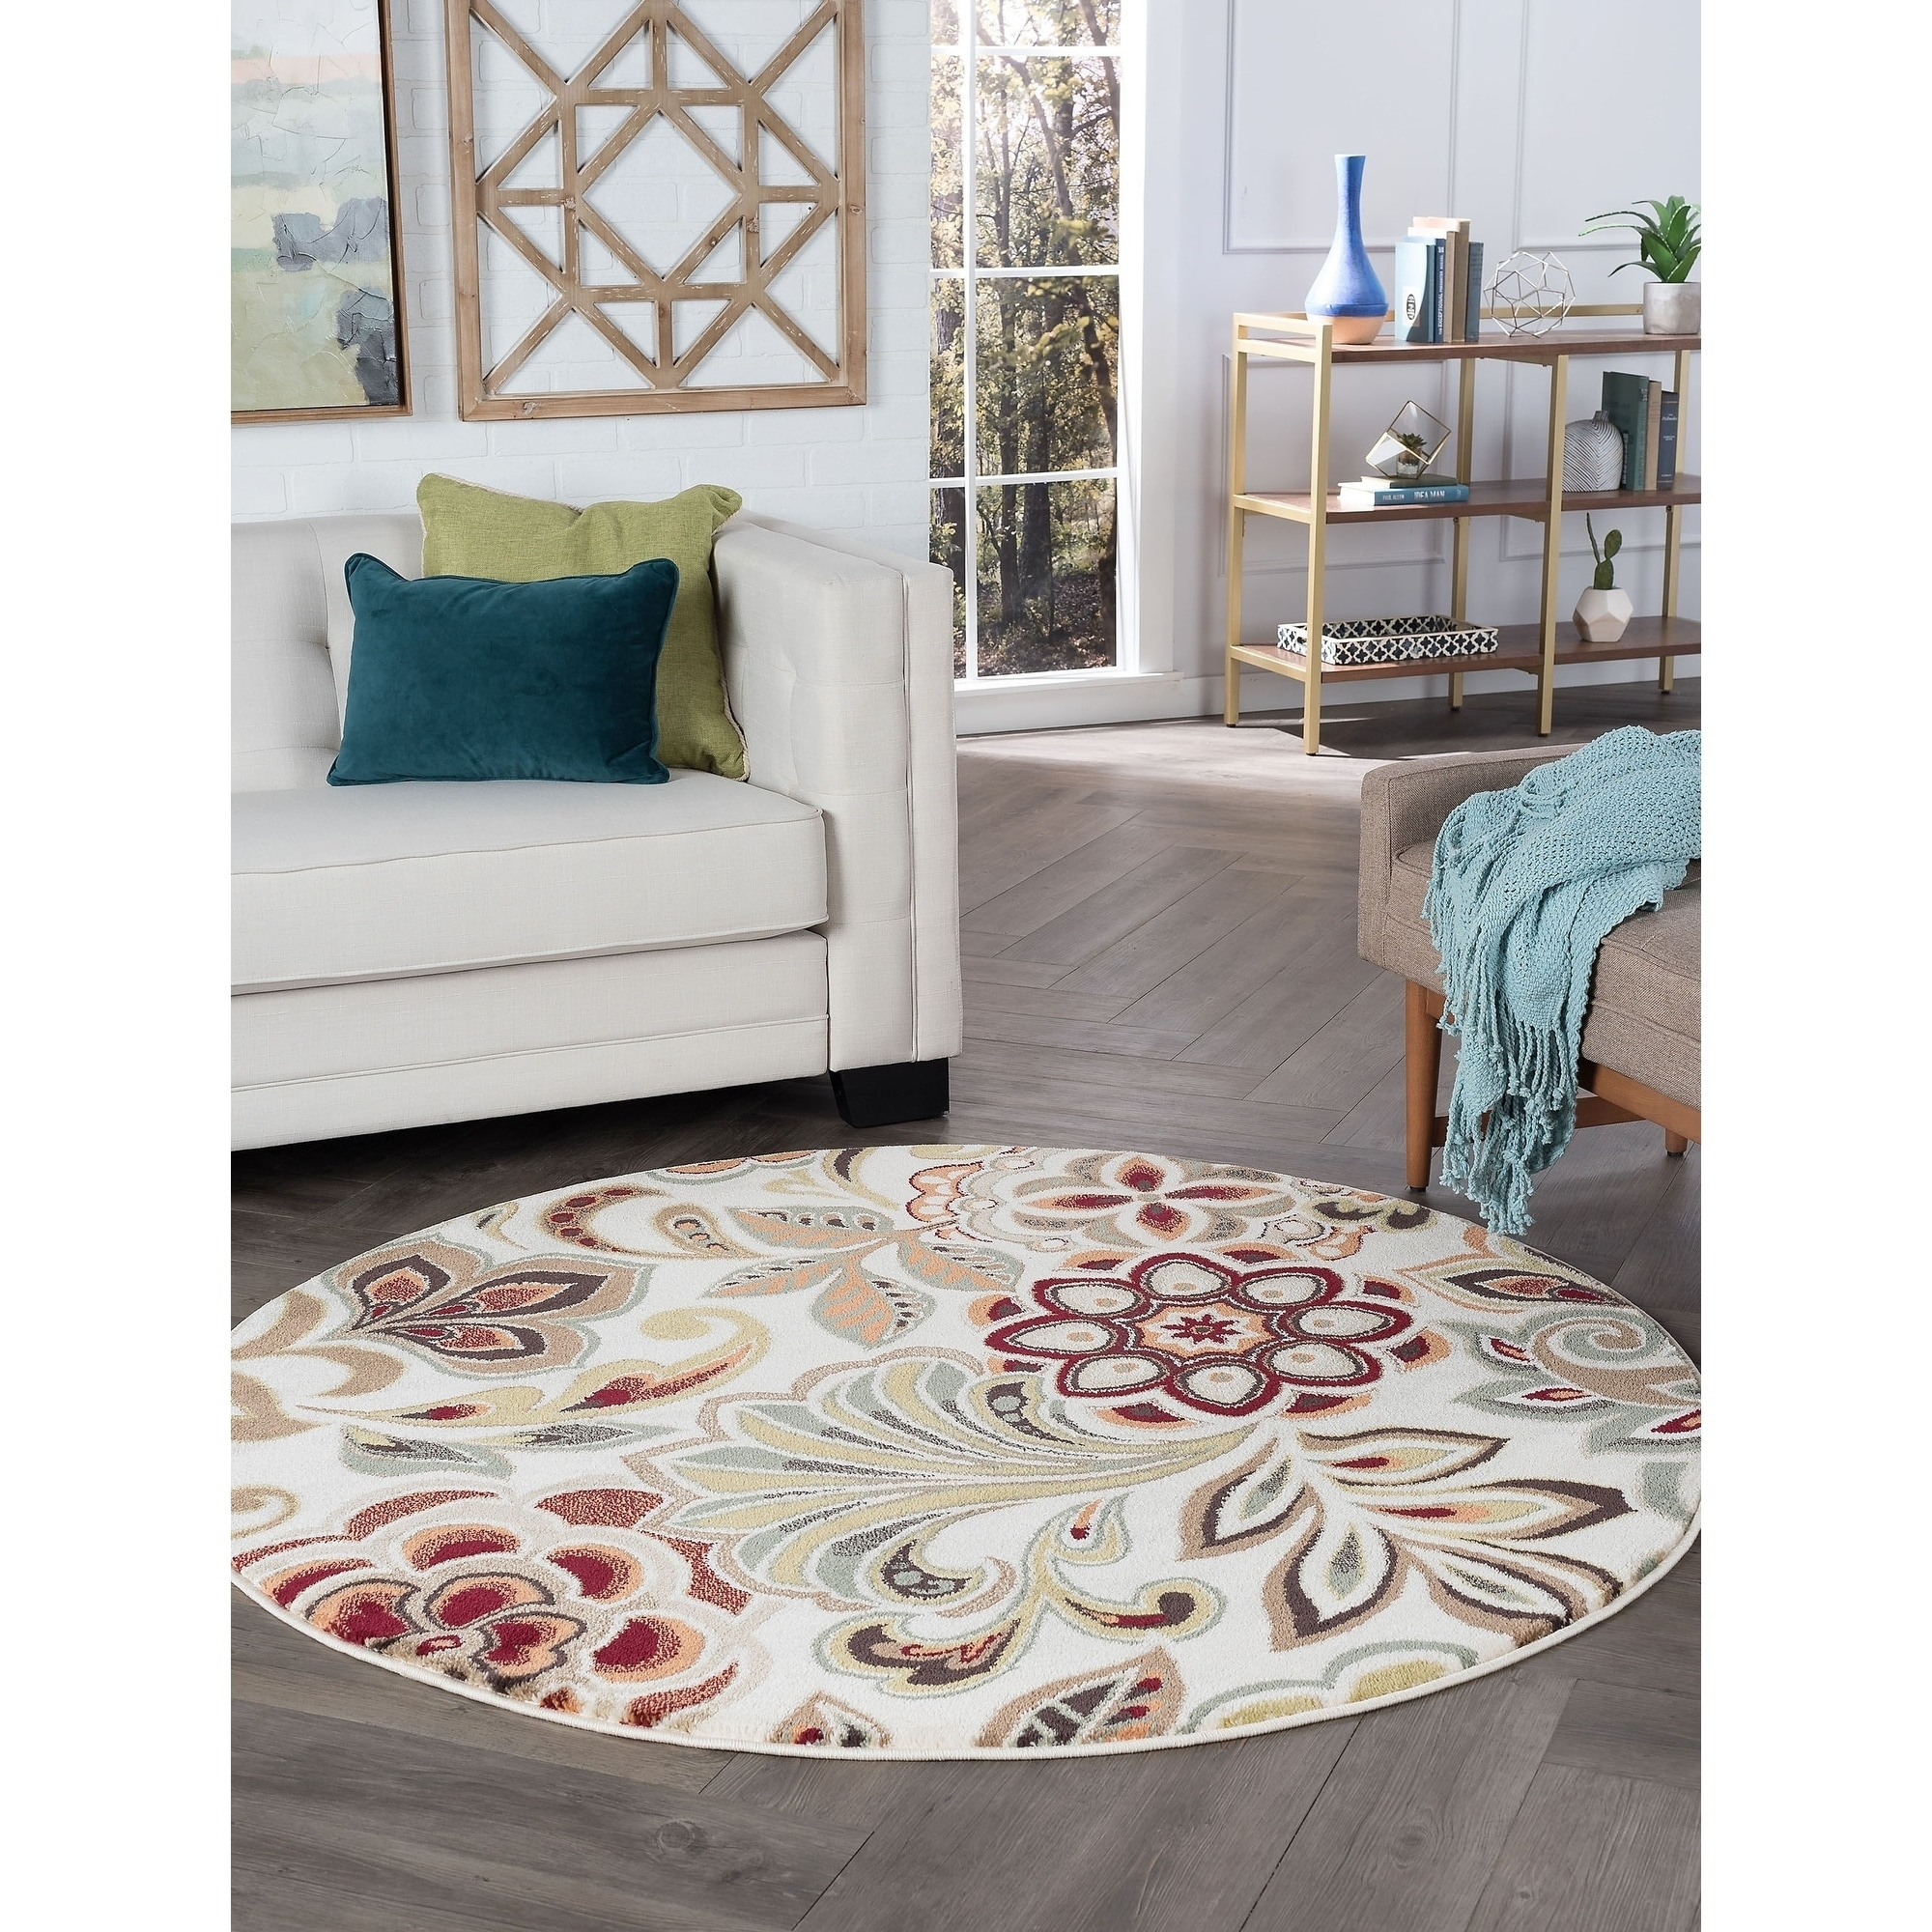 Alise Rugs Decora Transitional Floral Round Area Rug